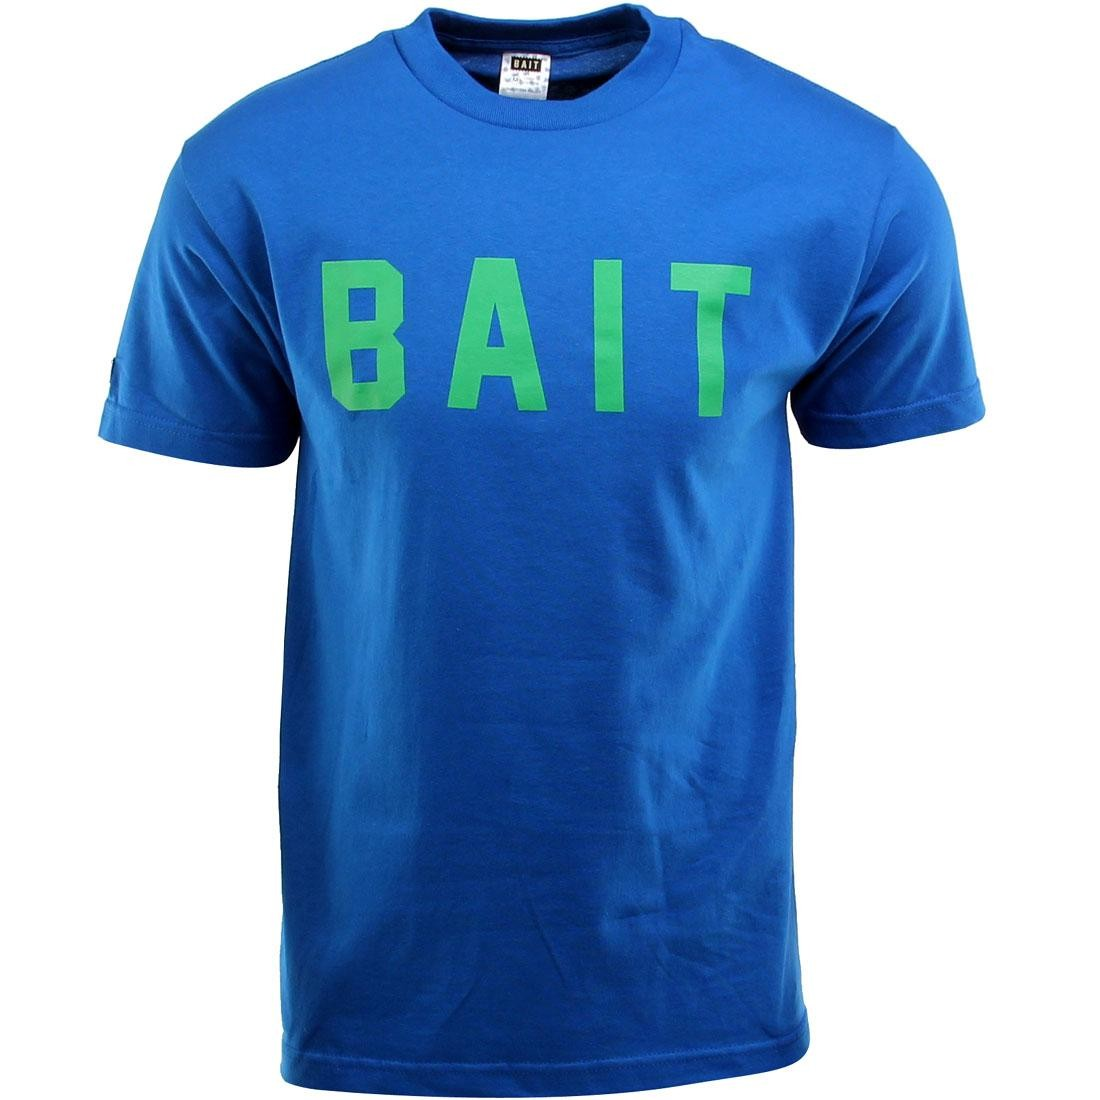 BAIT Logo Tee (blue / royal blue / green)